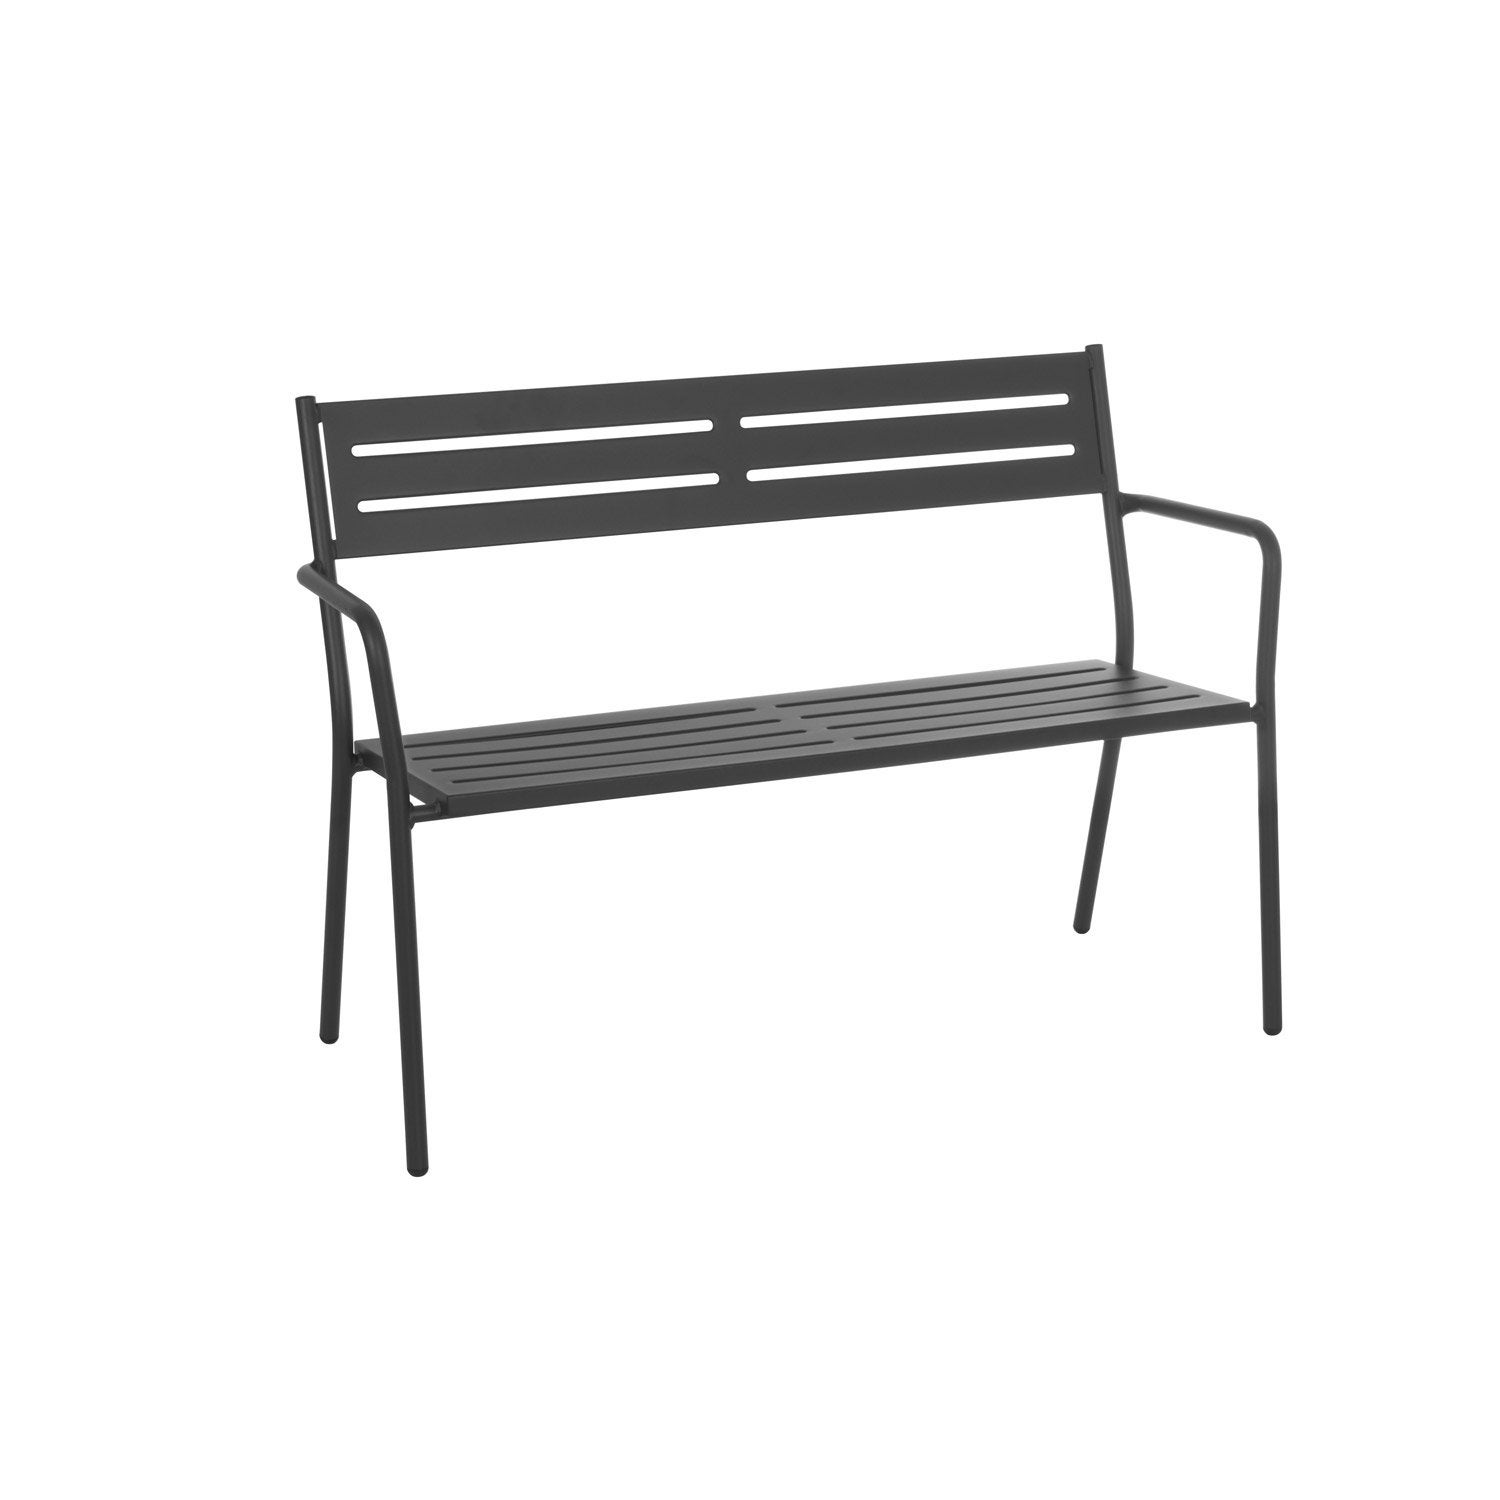 banc 2 places de jardin en acier trevi fer ancien leroy merlin. Black Bedroom Furniture Sets. Home Design Ideas